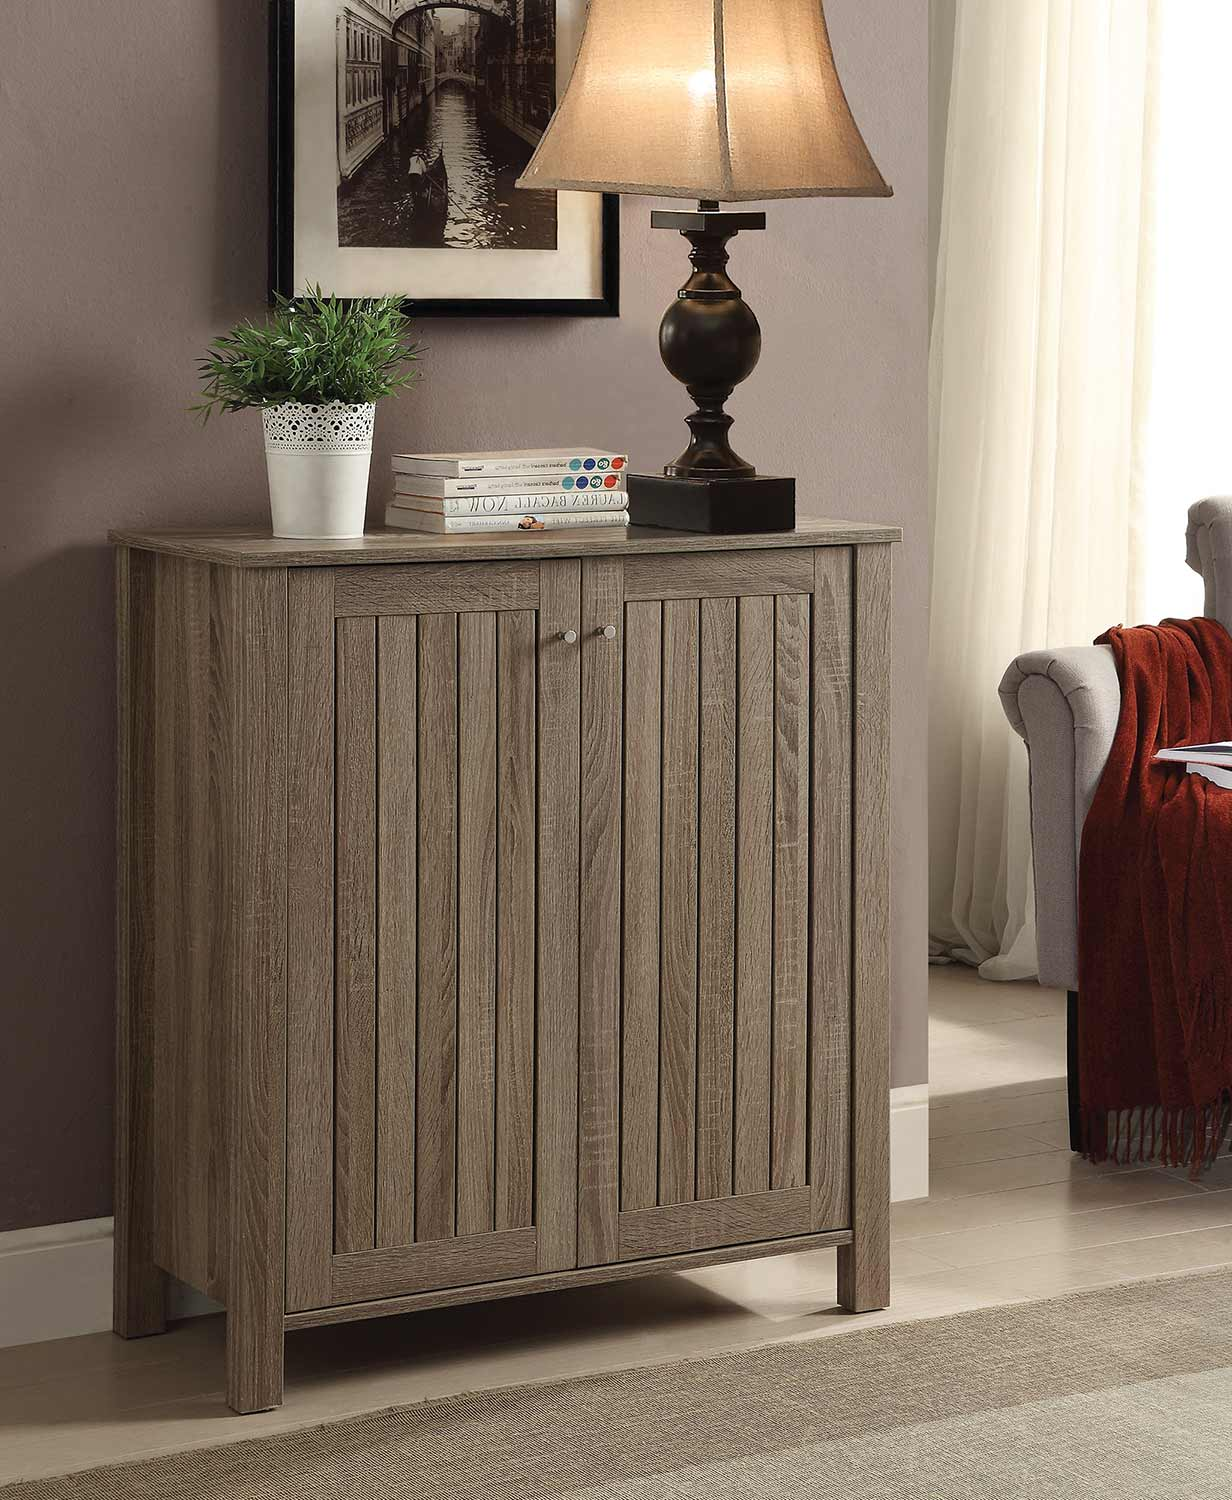 Coaster 950551 Shoe Cabinet - Dark Taupe